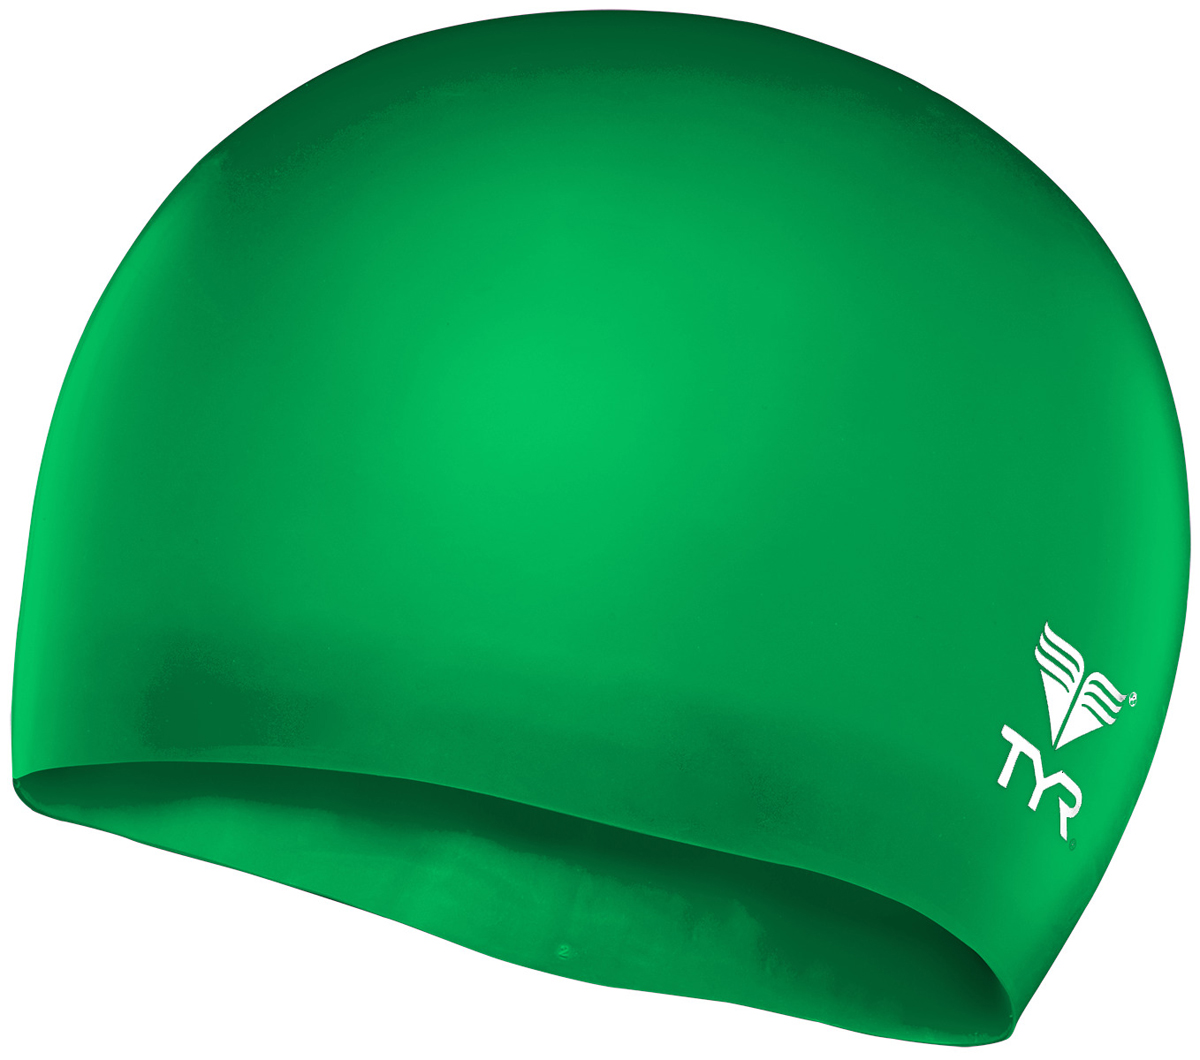 Шапочка для плавания Tyr Wrinkle Free Junior Silicone Cap, цвет: зеленый. LCSJR кольца tyr dive rings цвет ассорти lstsrng